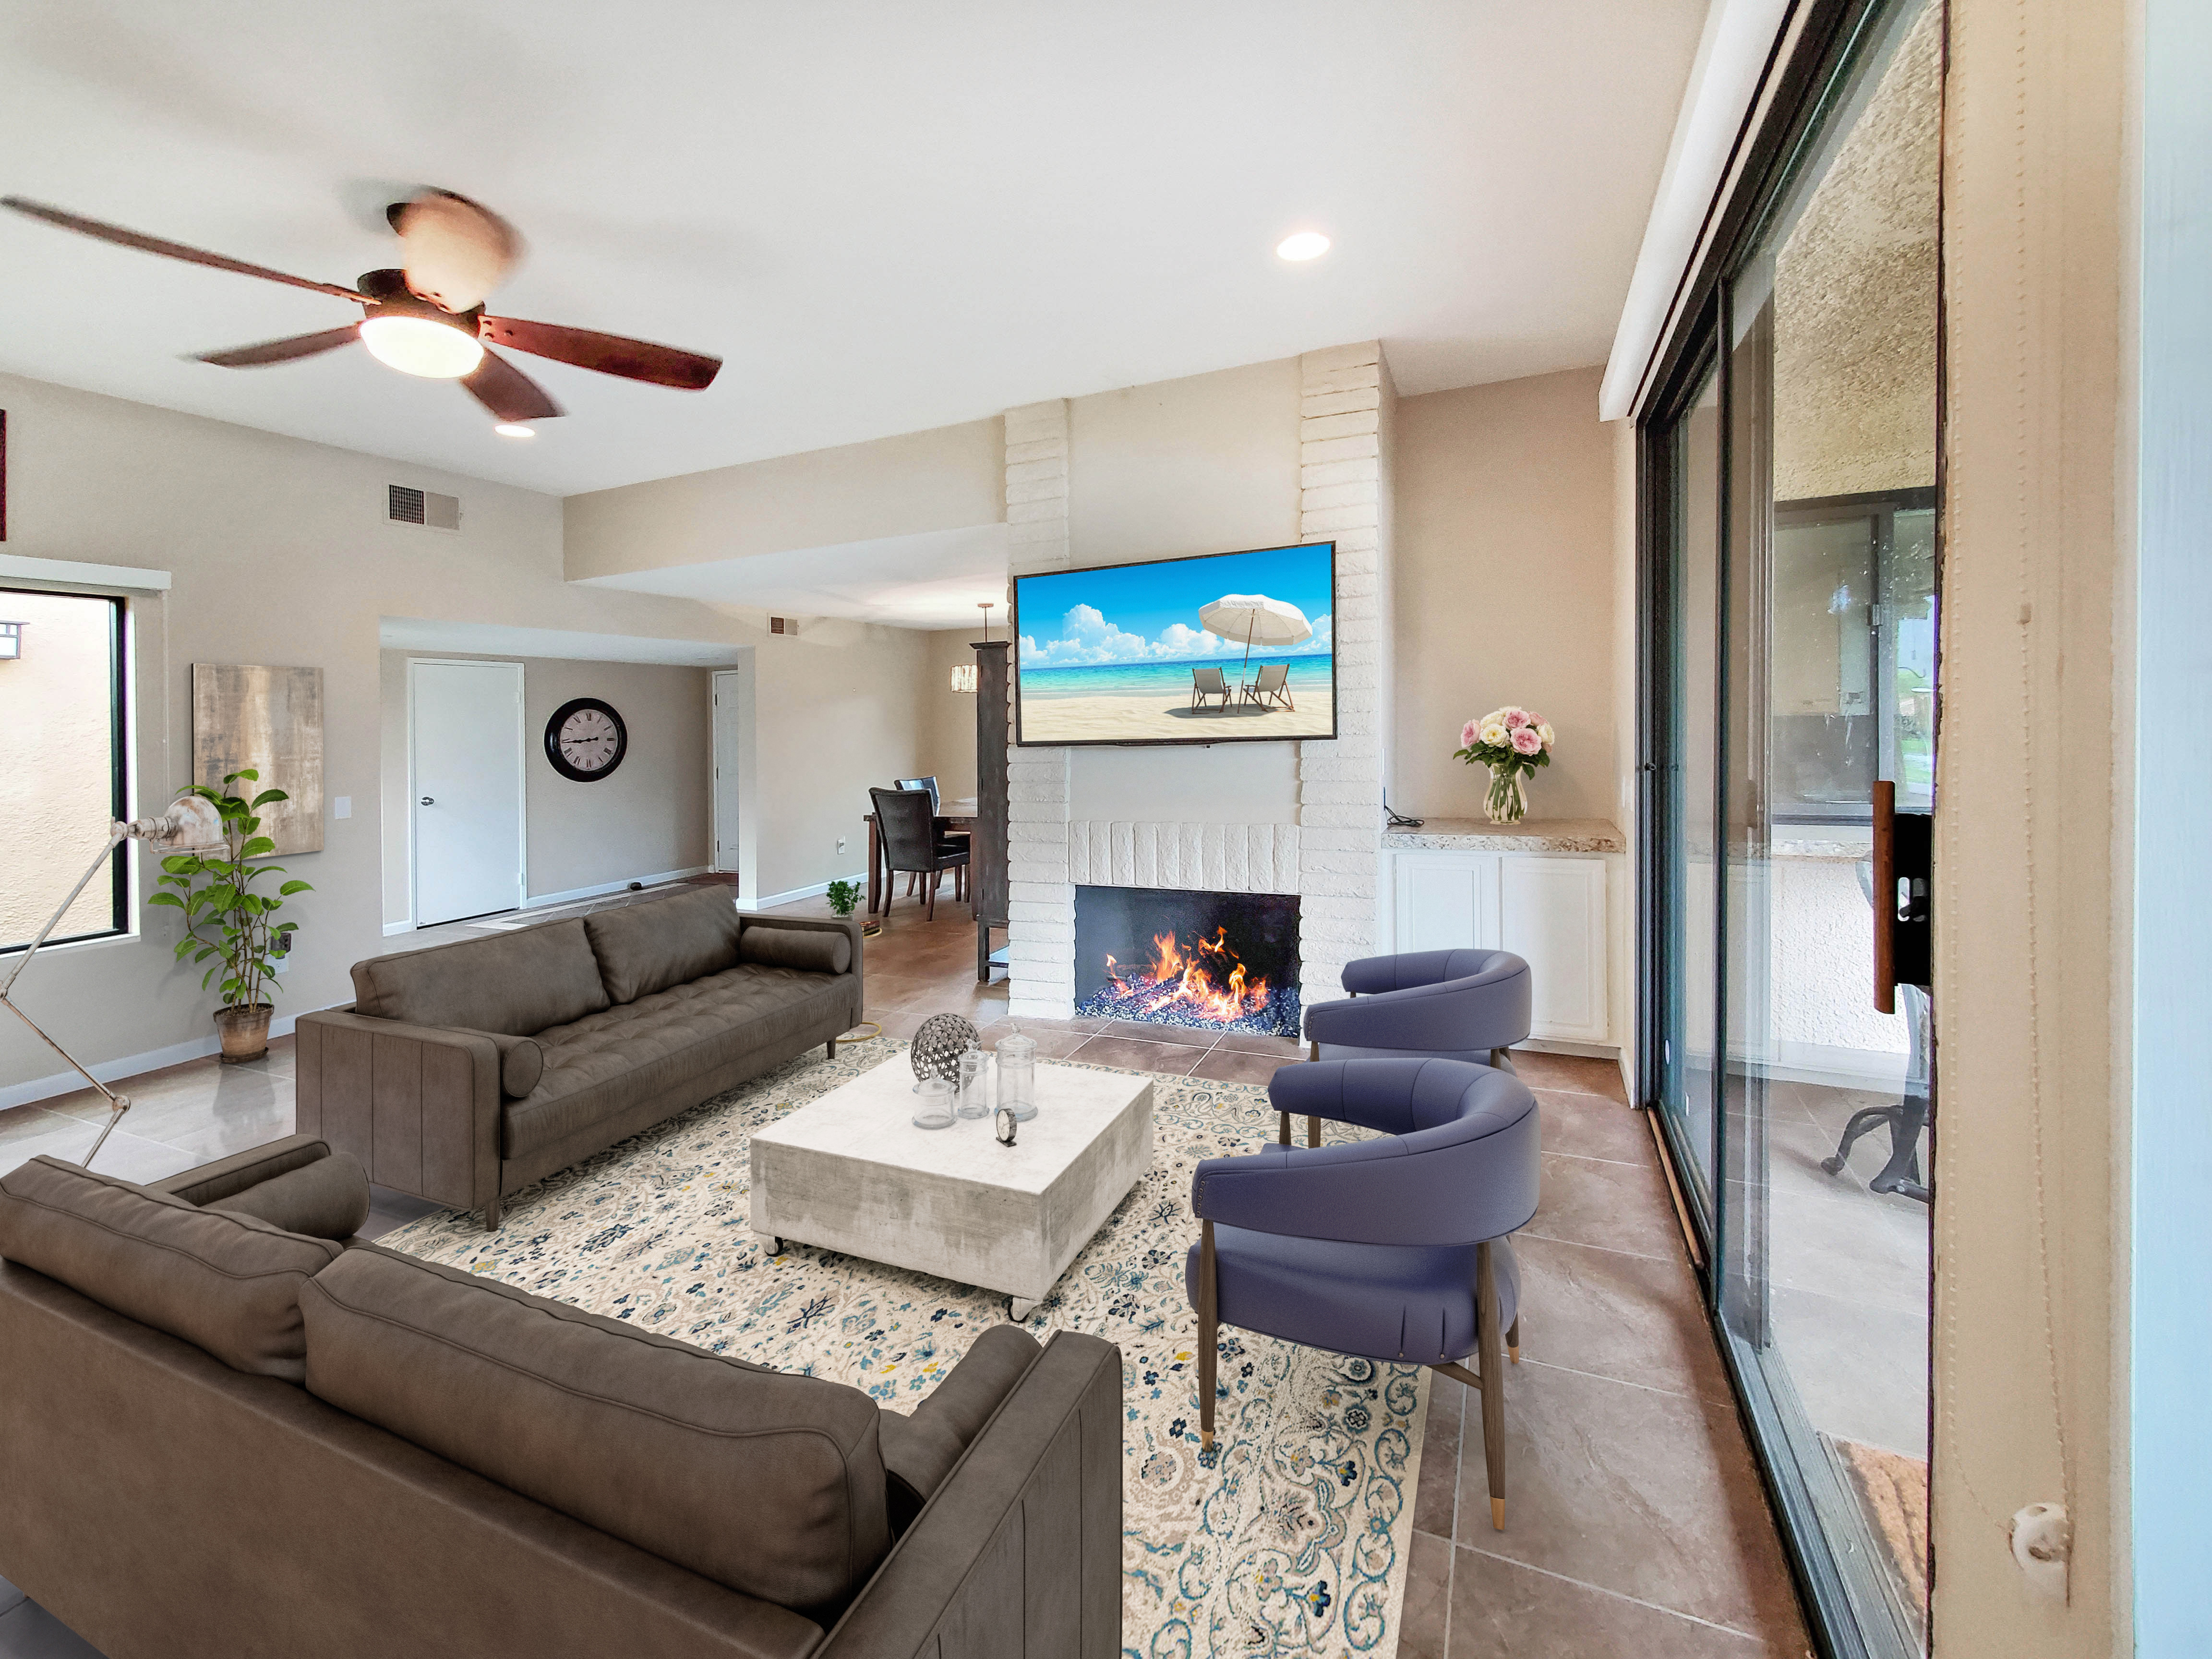 Condos for sale in Sunrise Country Club